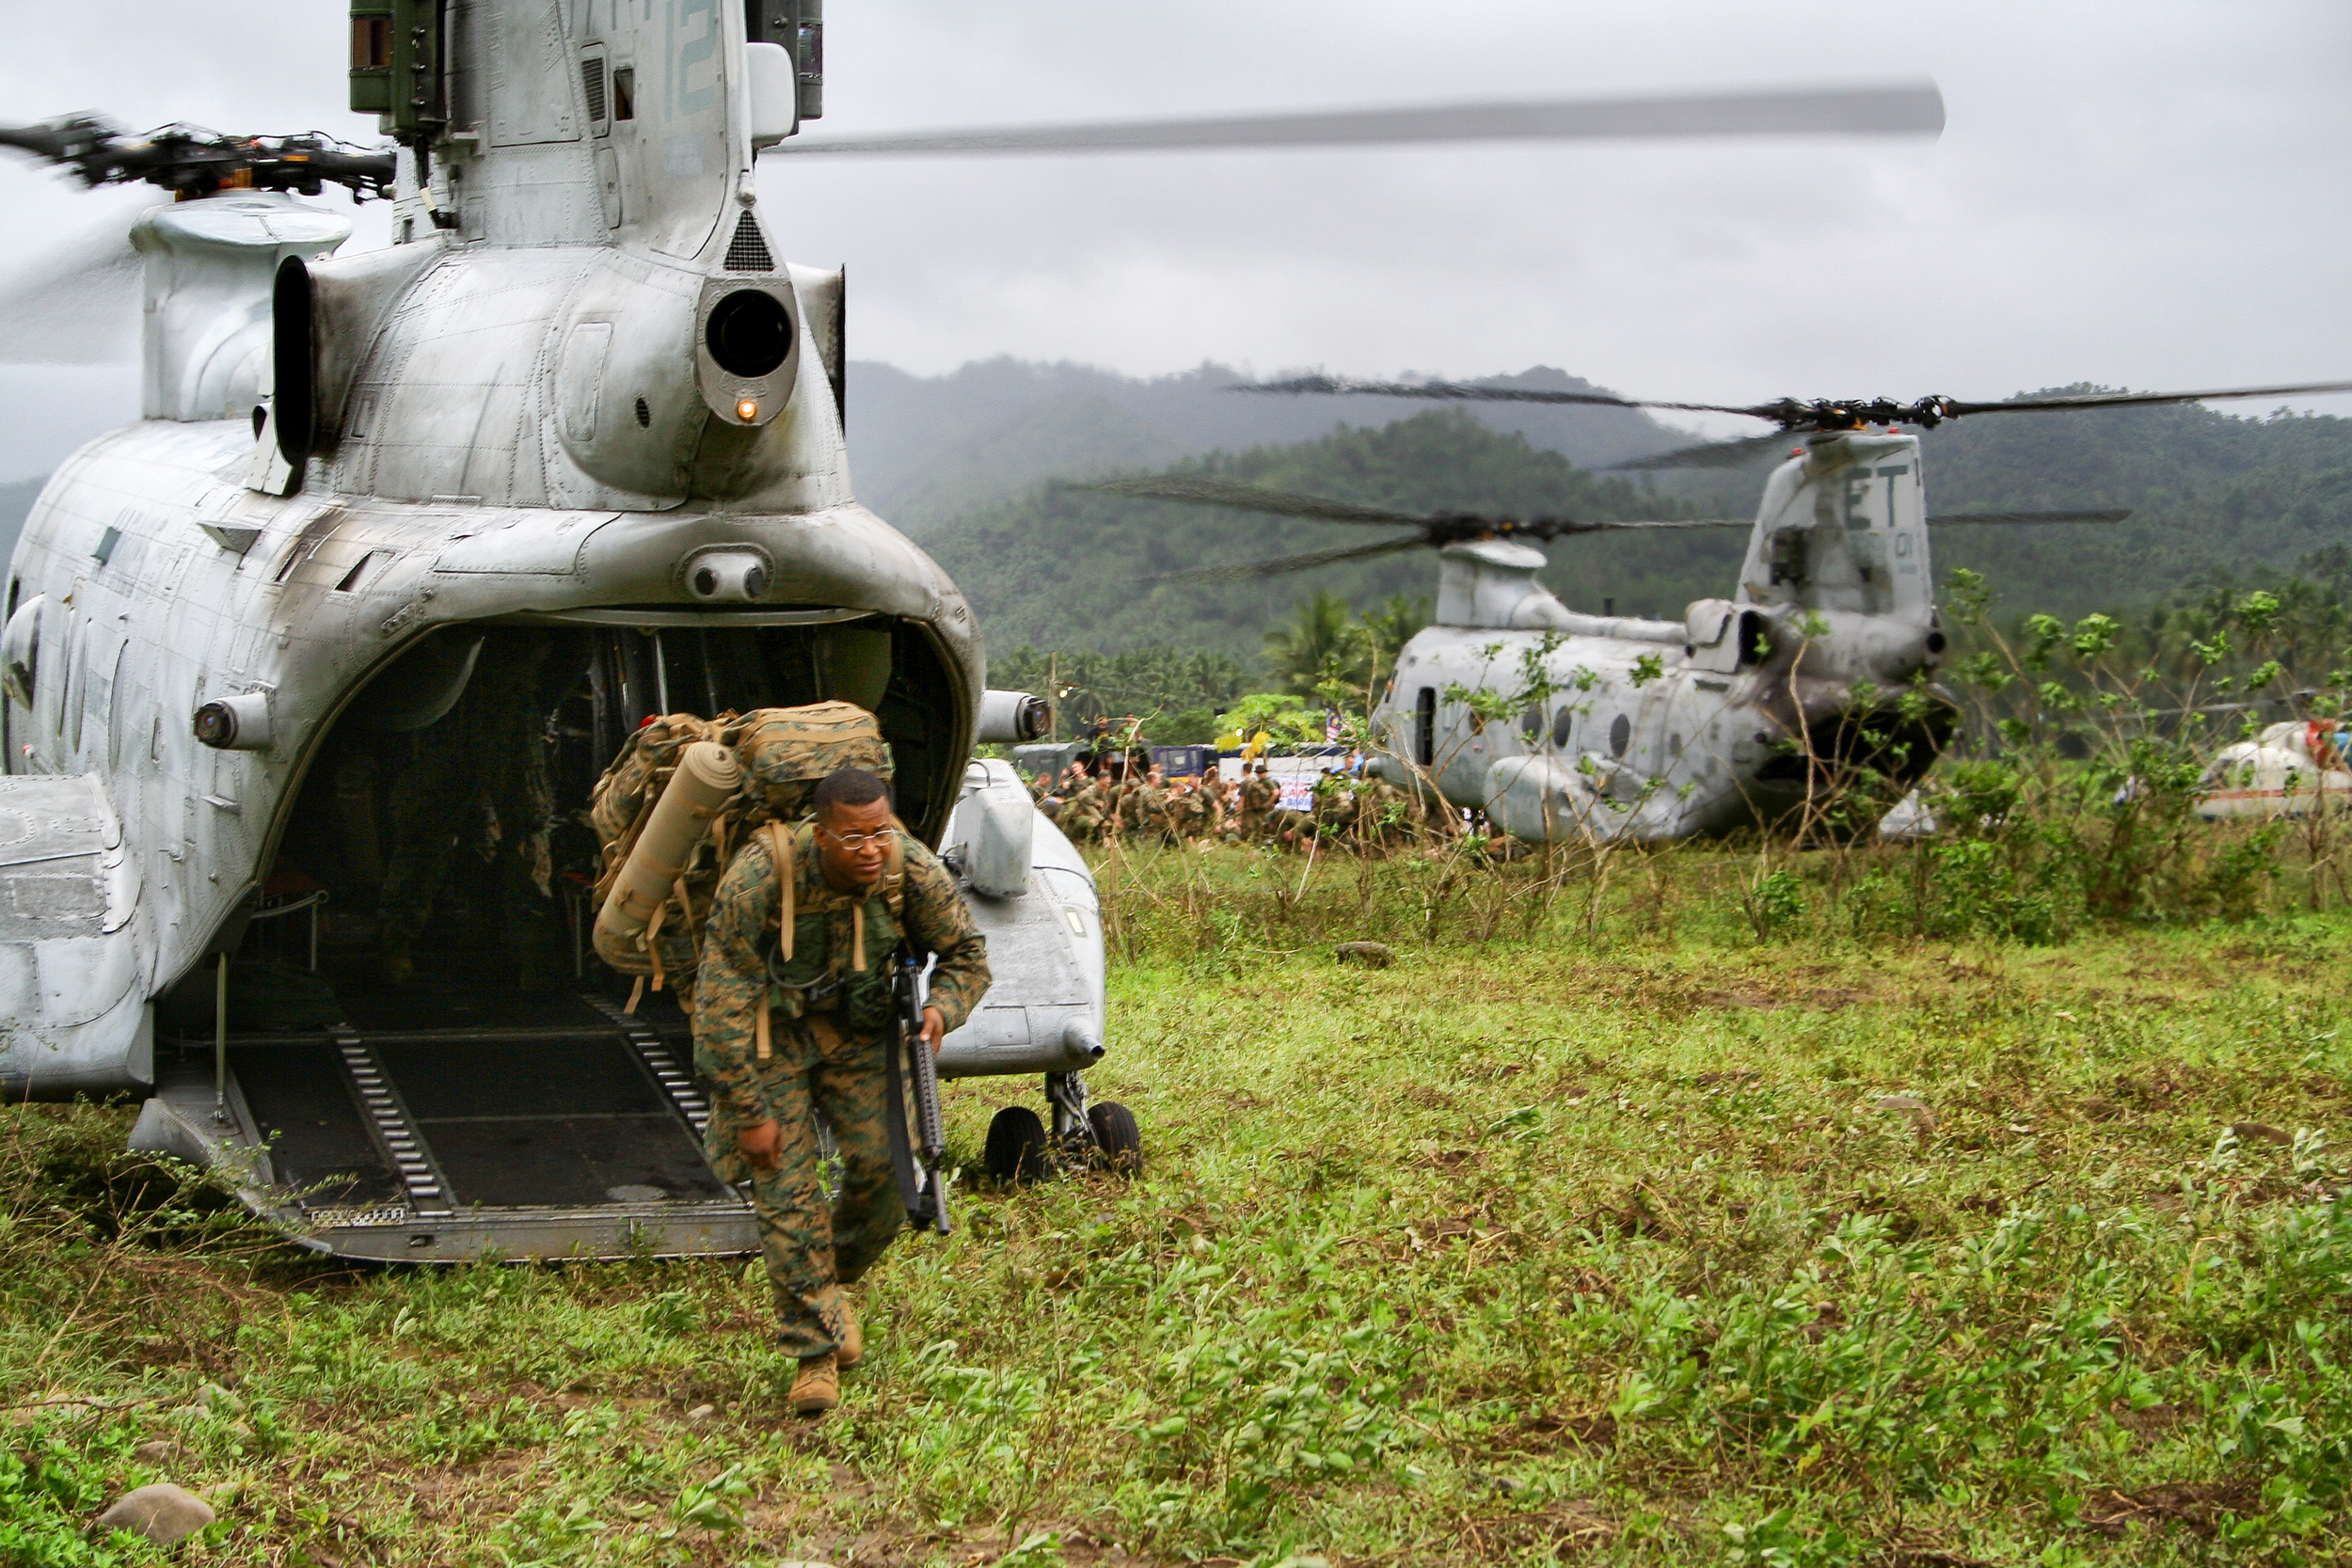 U.S. Navy Hospital Corpsman (medic) exits a helicopter at the site of a landslide on the island of Leyte, Philippines.